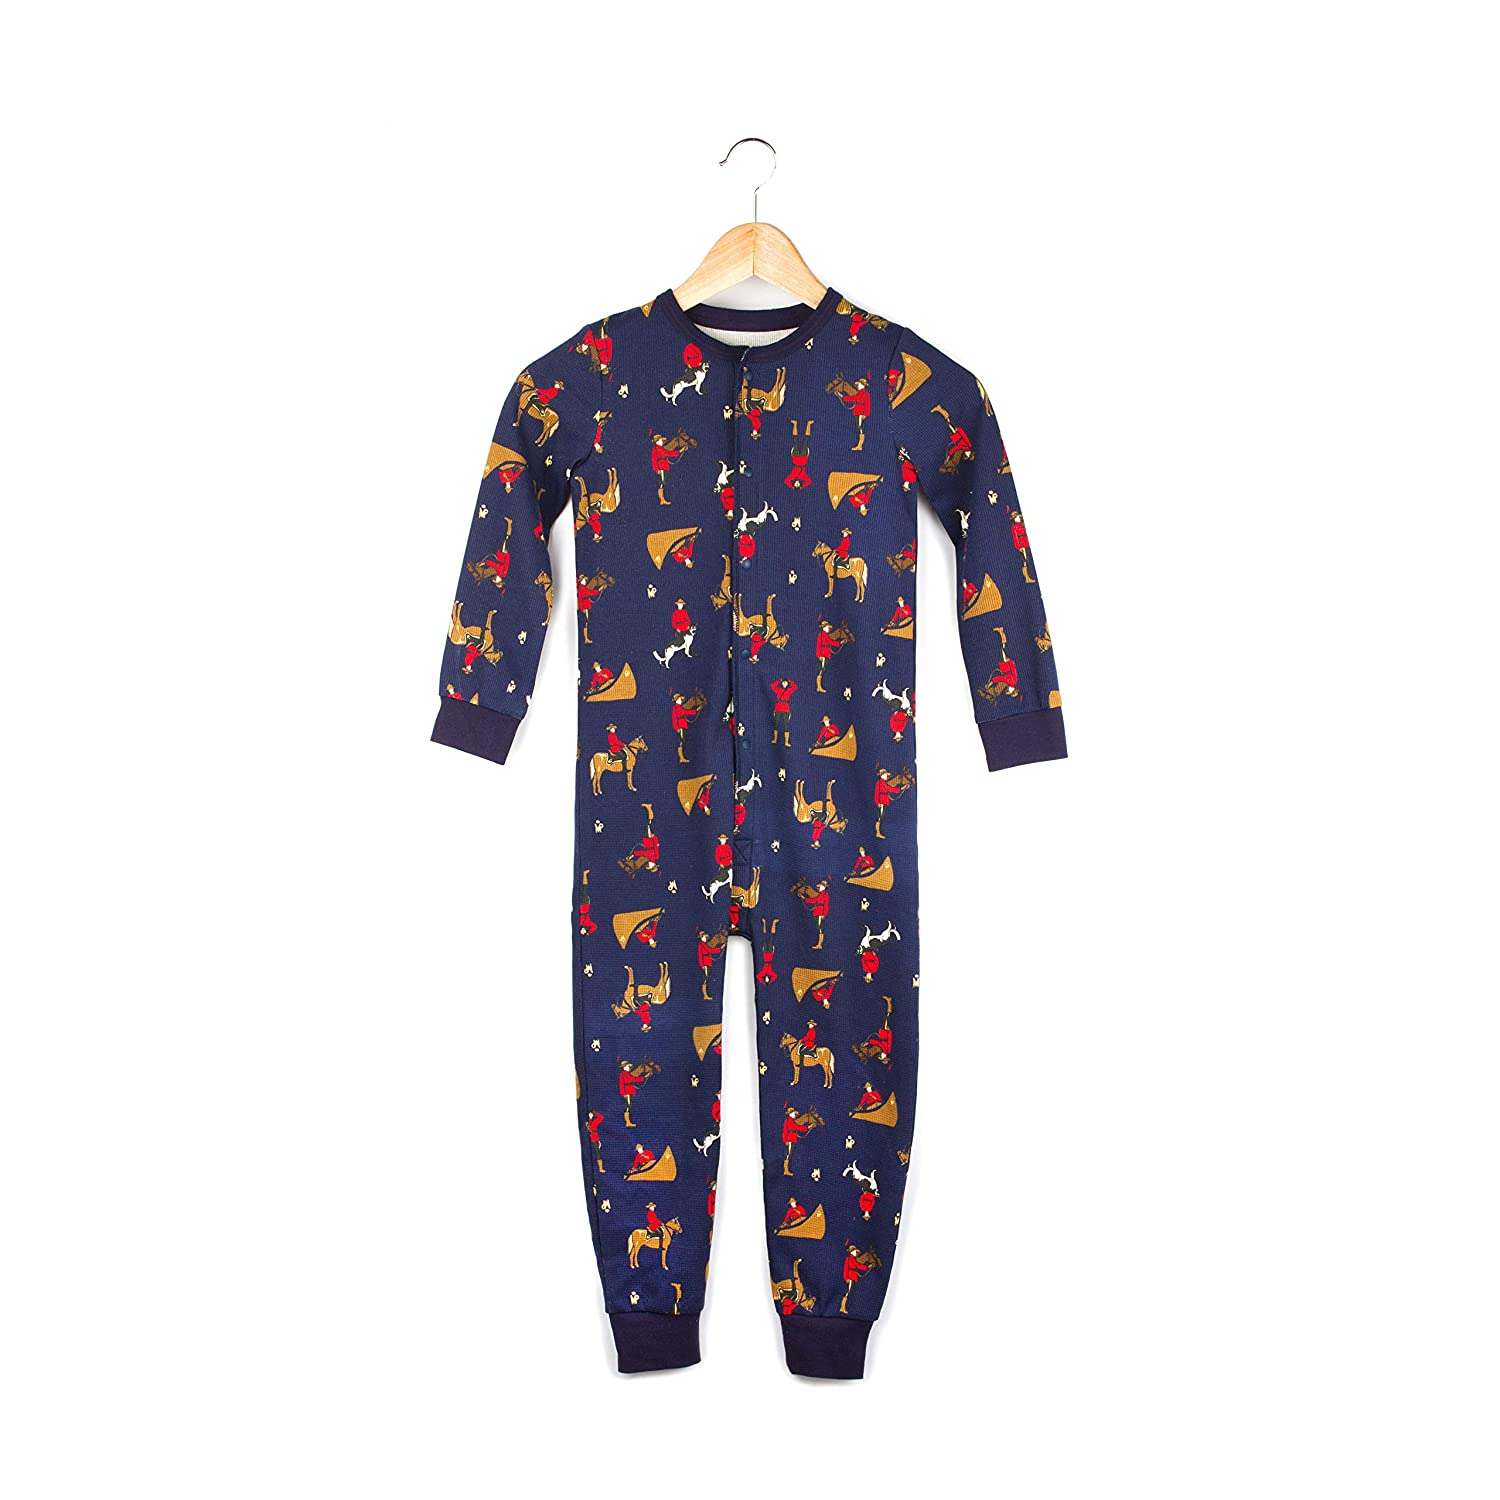 Drake General Store Kids Unisex Onesie One-Piece Footed Thermal Pajamas